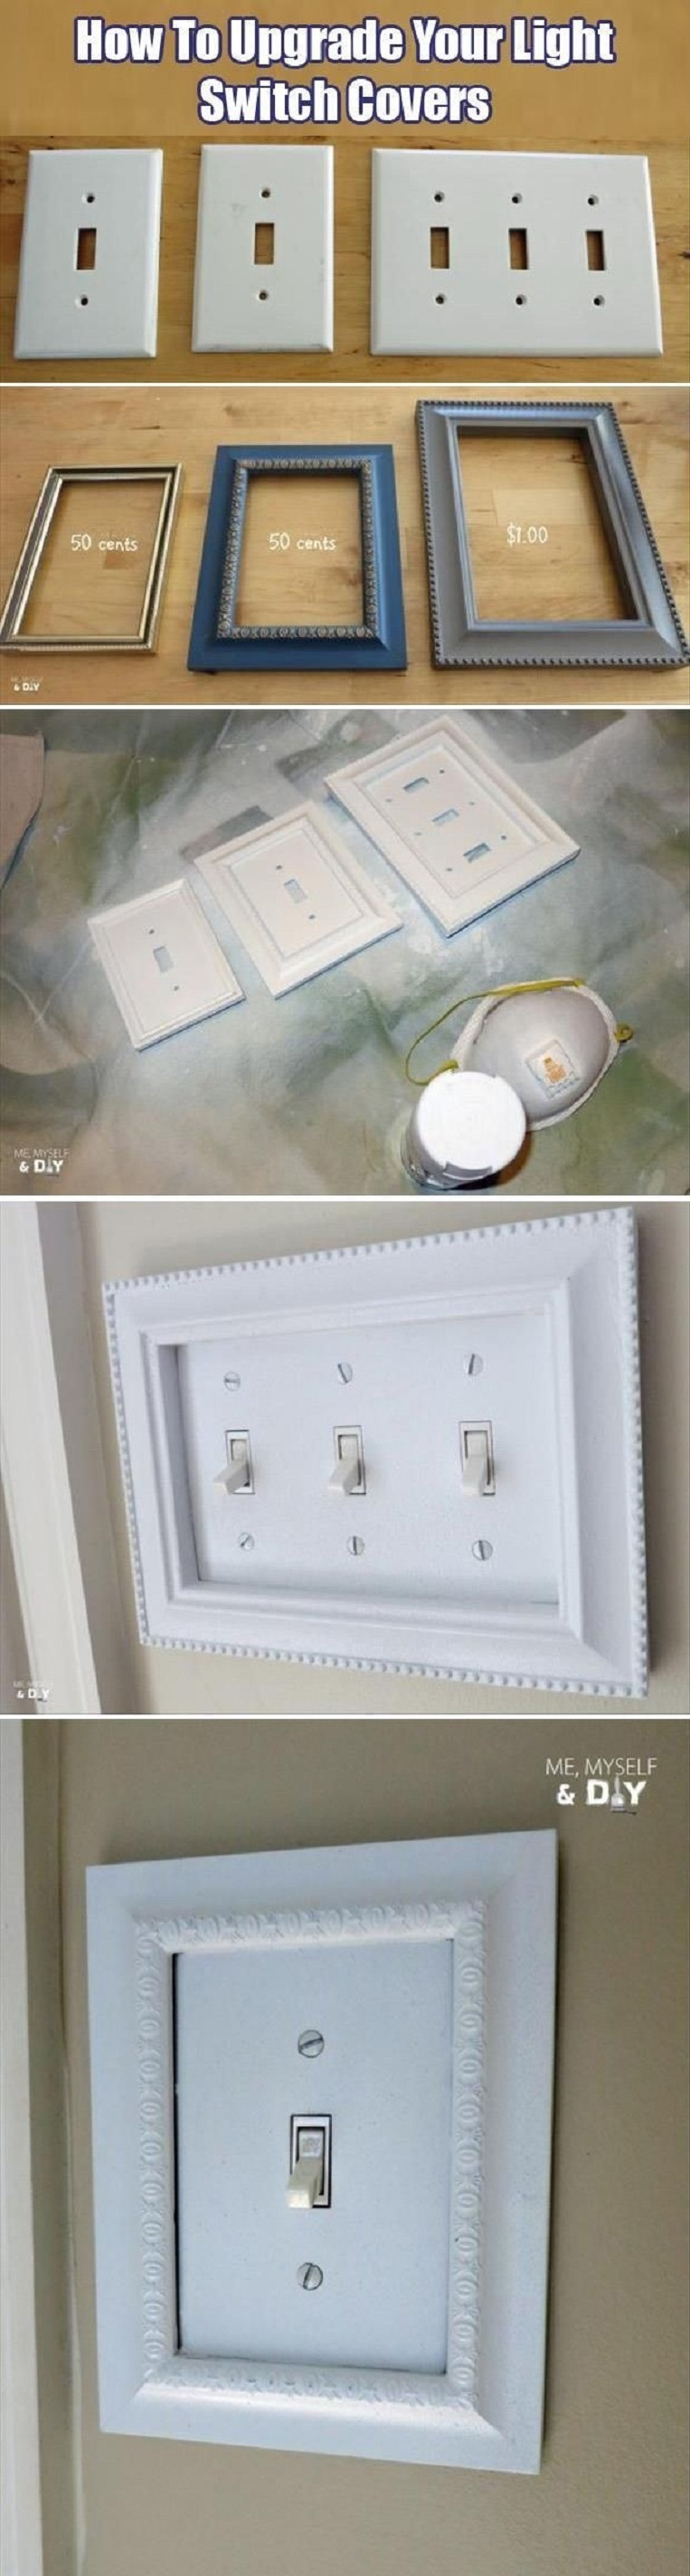 inexpensive-craft-store-frames-fit-perfectly-around-your-light-switch-covers-14-simple-diy-hacks-to-make-your-home-look-more-expensive-gleamitup.jpg